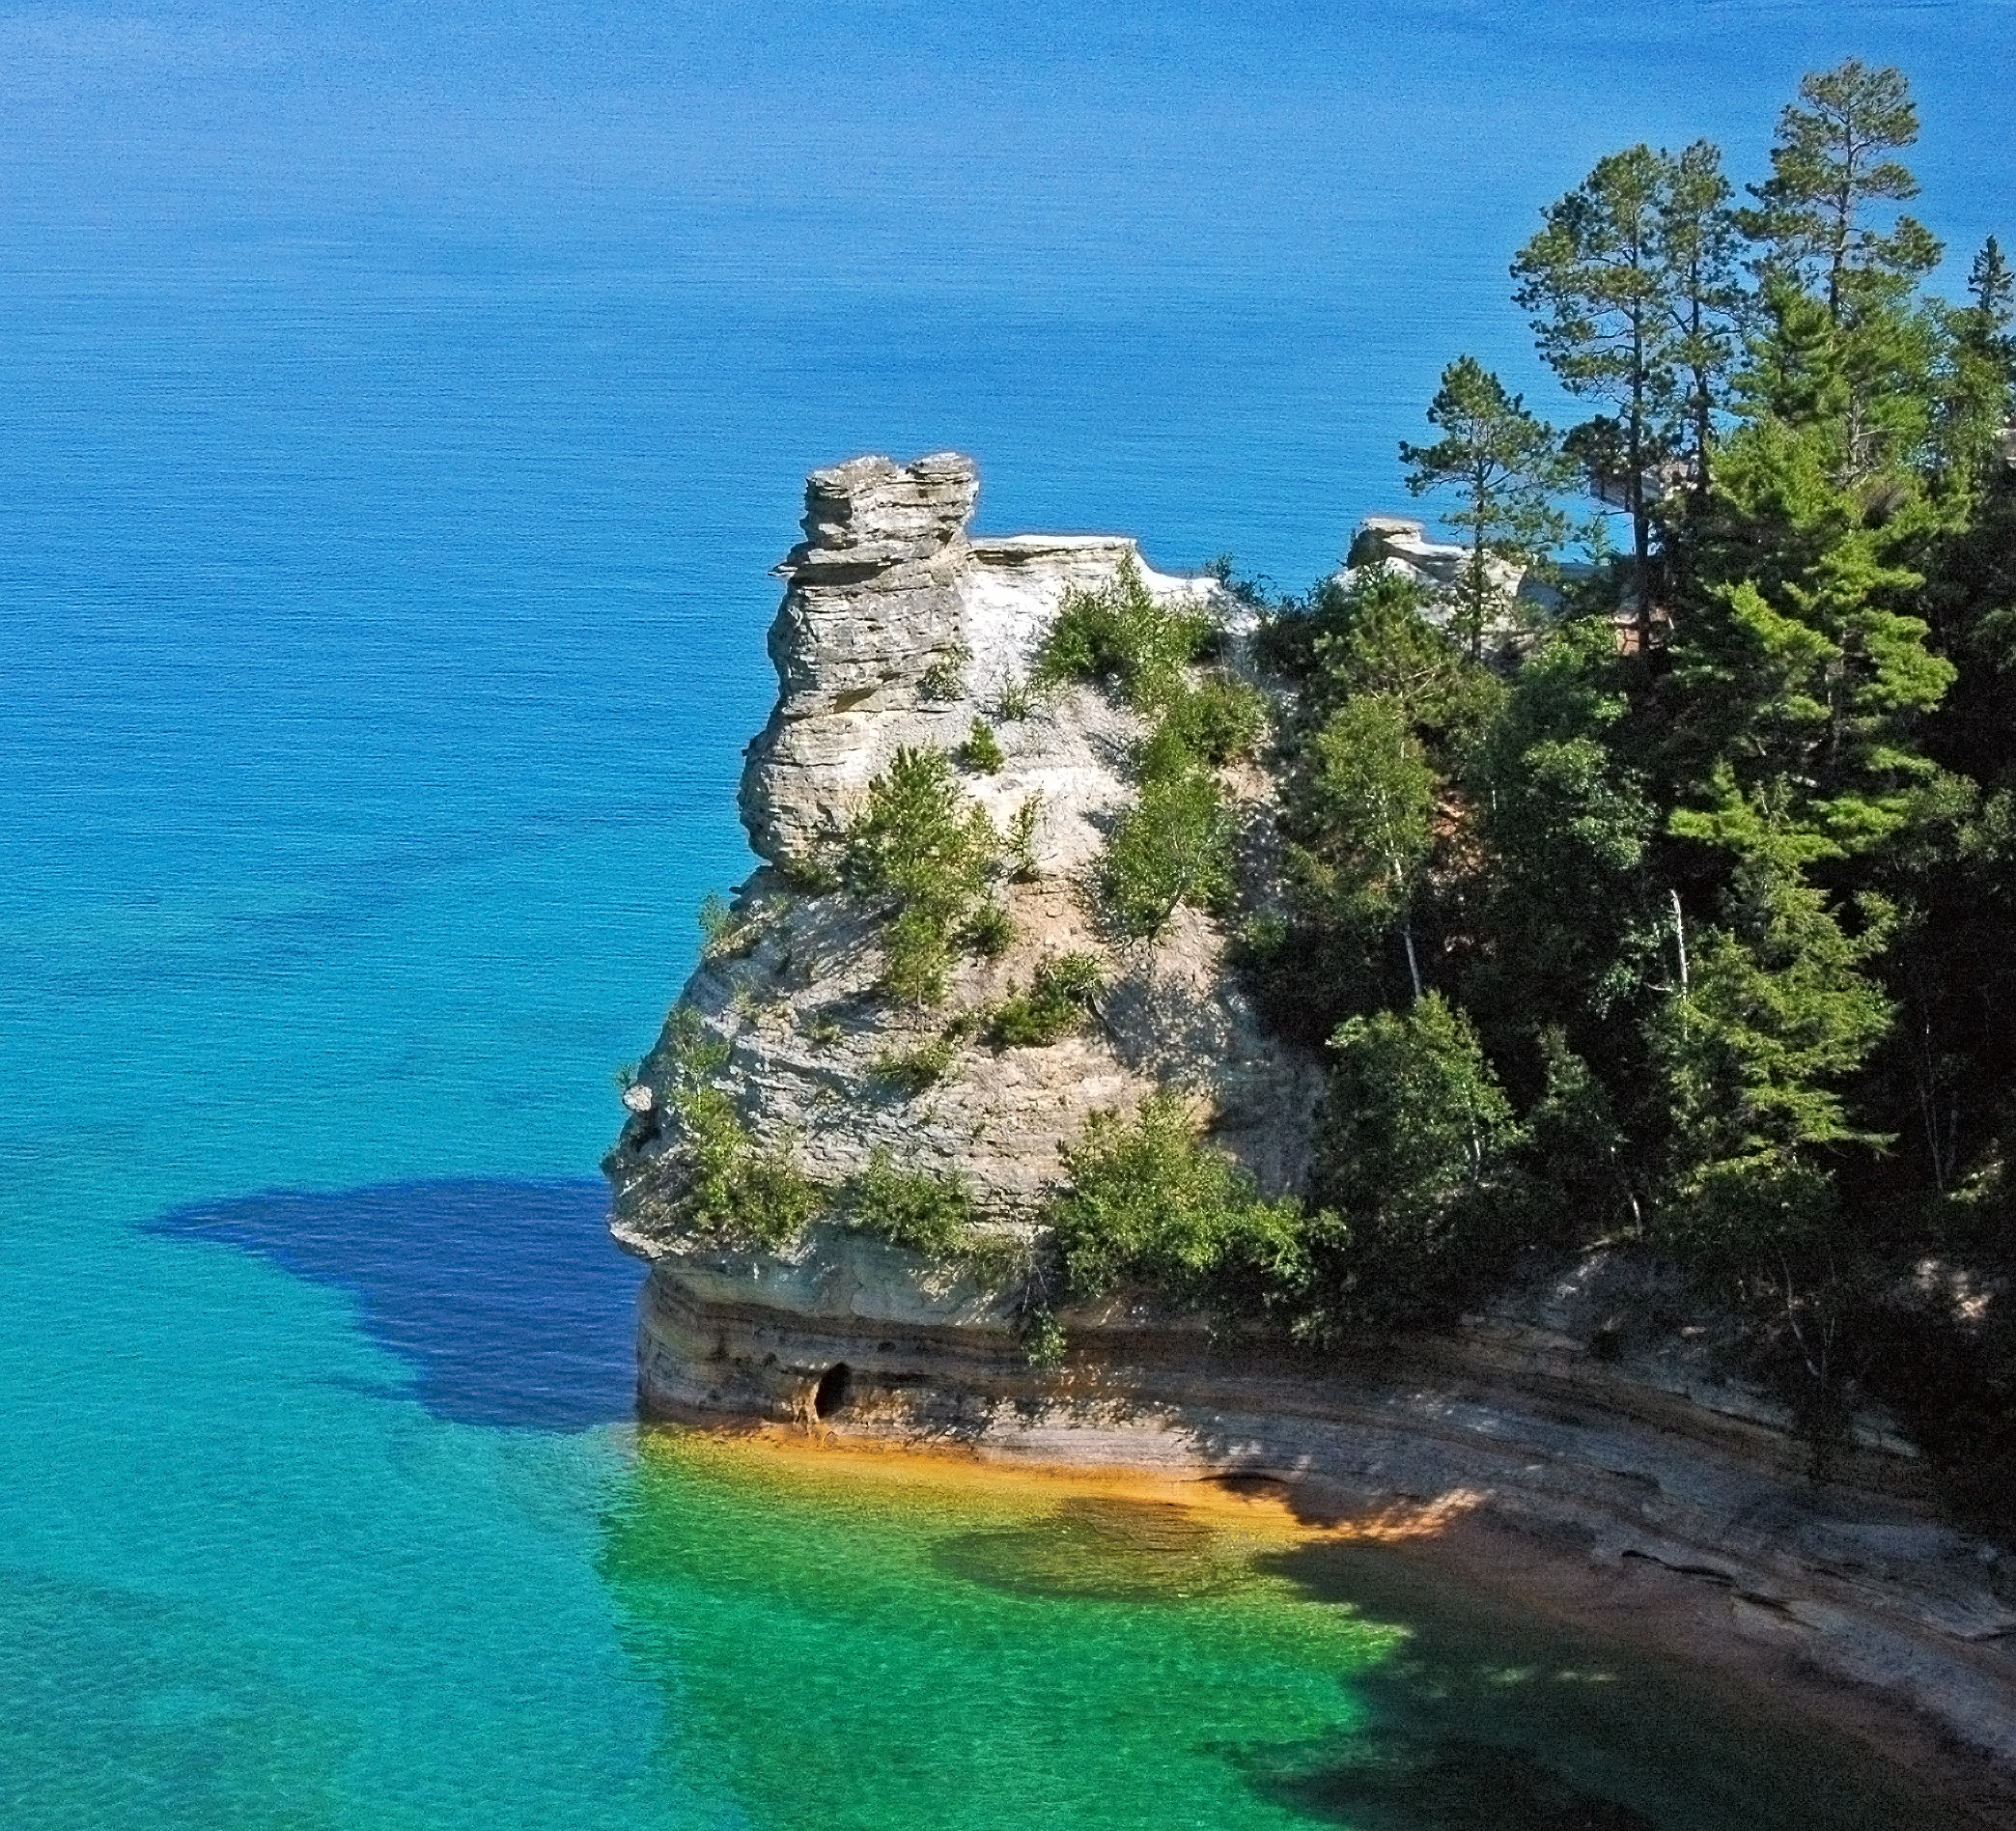 5 Best Michigan Beach Vacation Spot To Visit In Summer